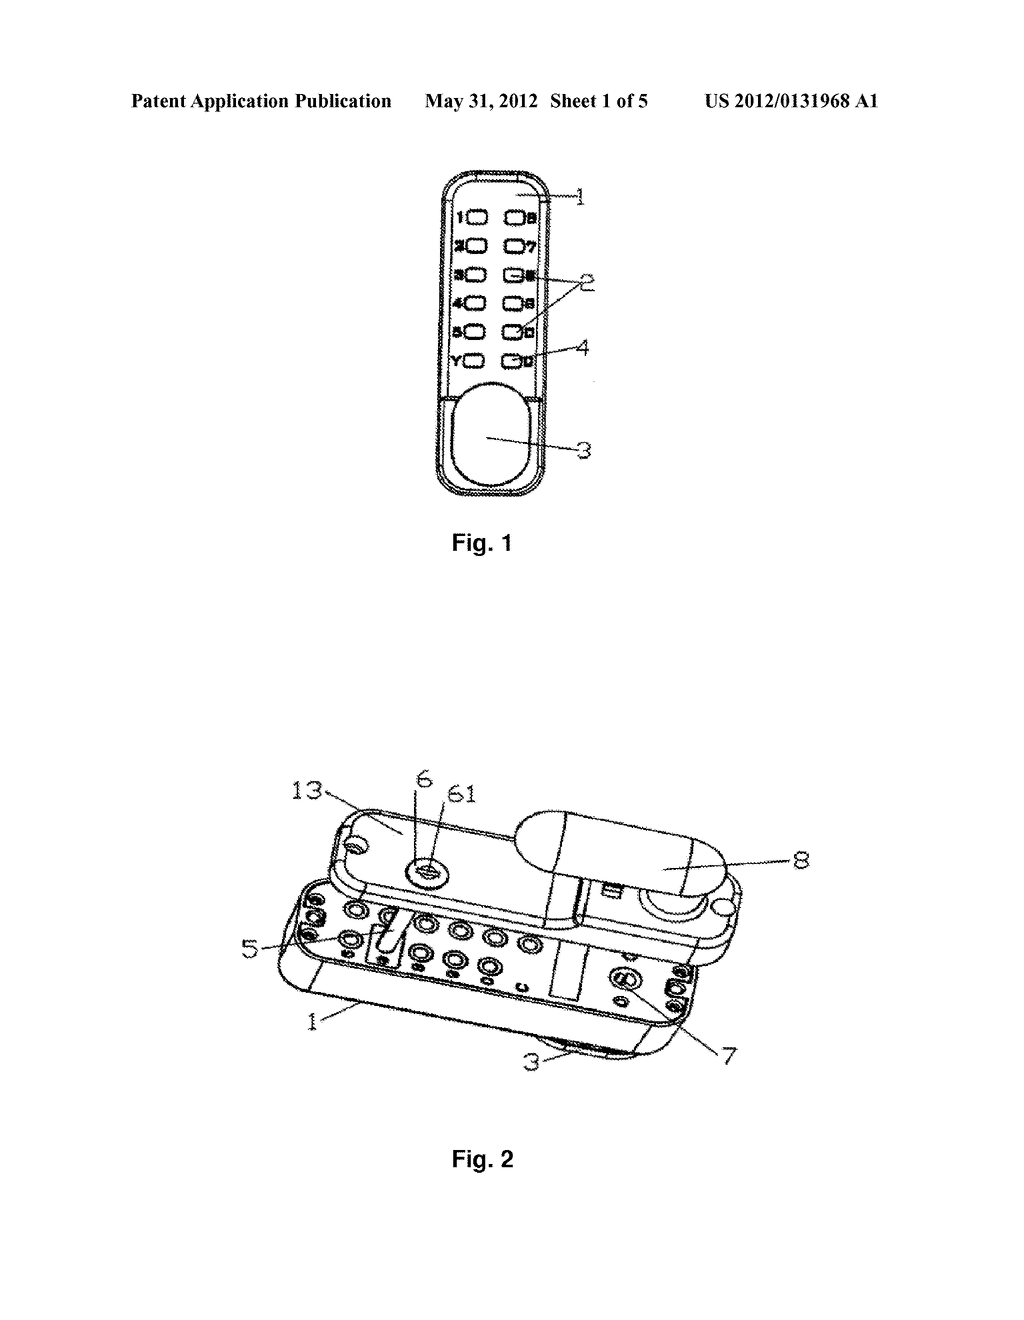 Tesla Fuse Box Code Changing Mechanism For A Mechanical Combination Lock Diagram Schematic And Image 02